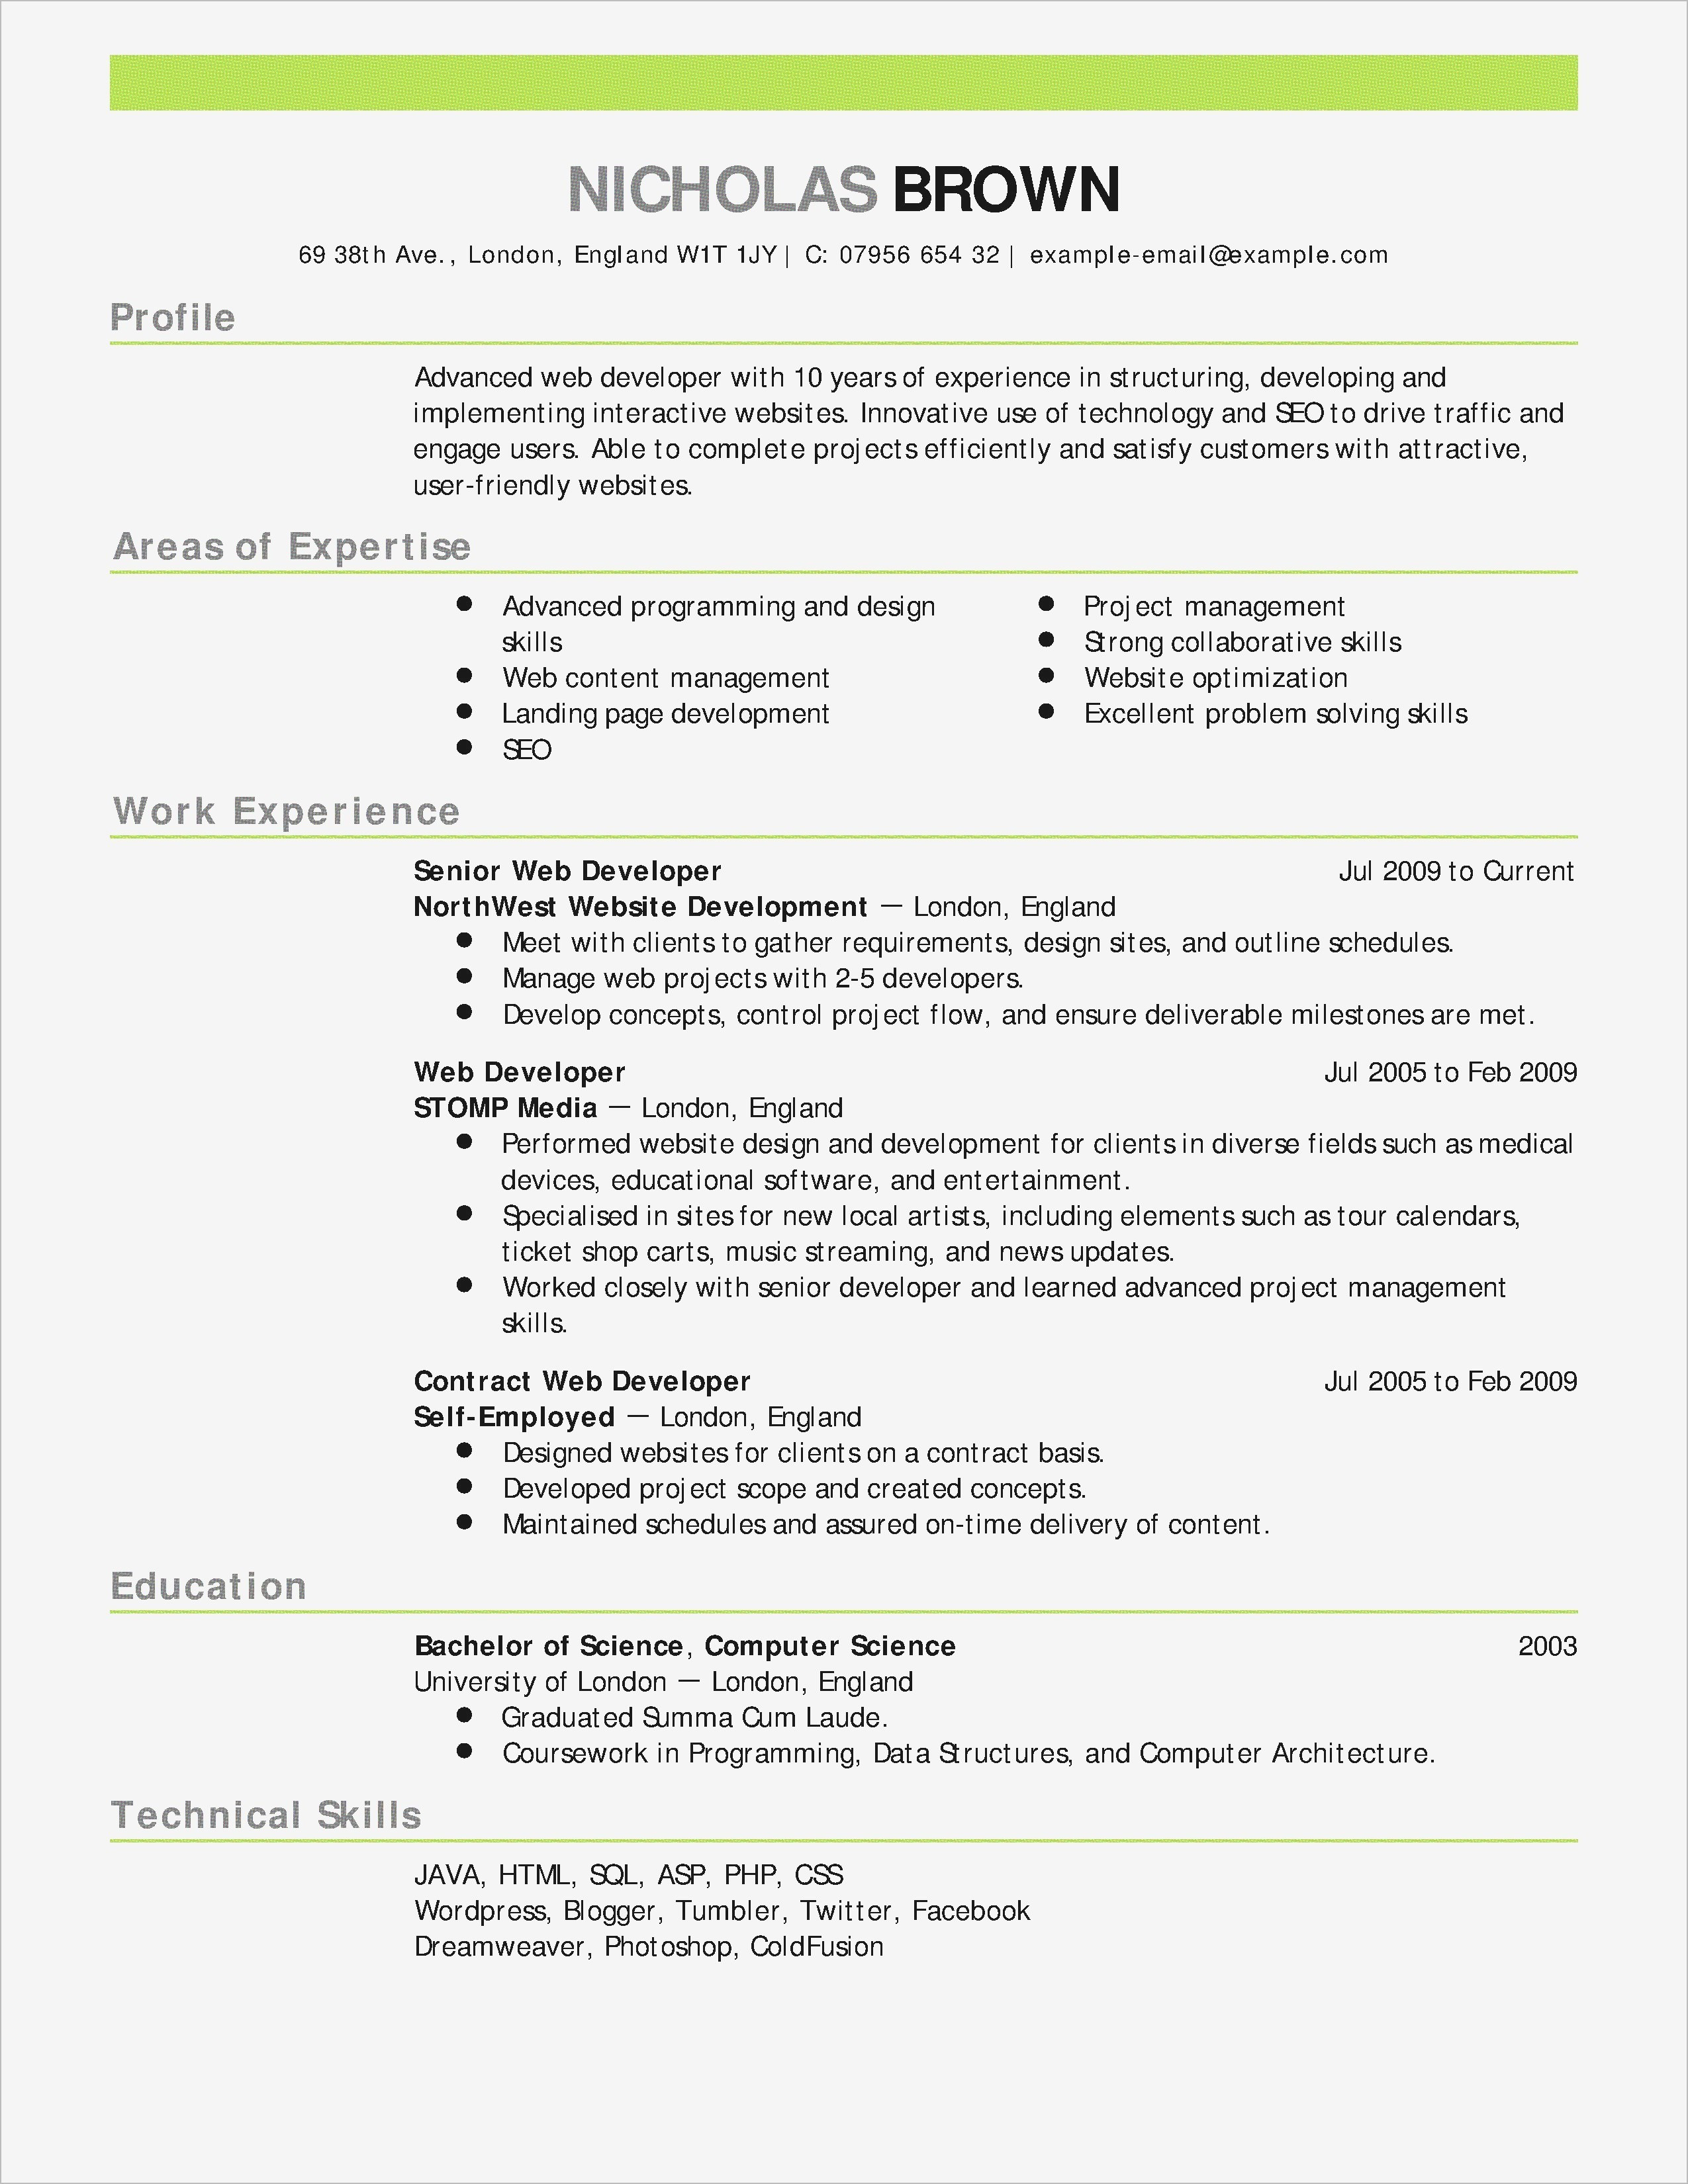 Word Templates Resume - New Template for Resume Word